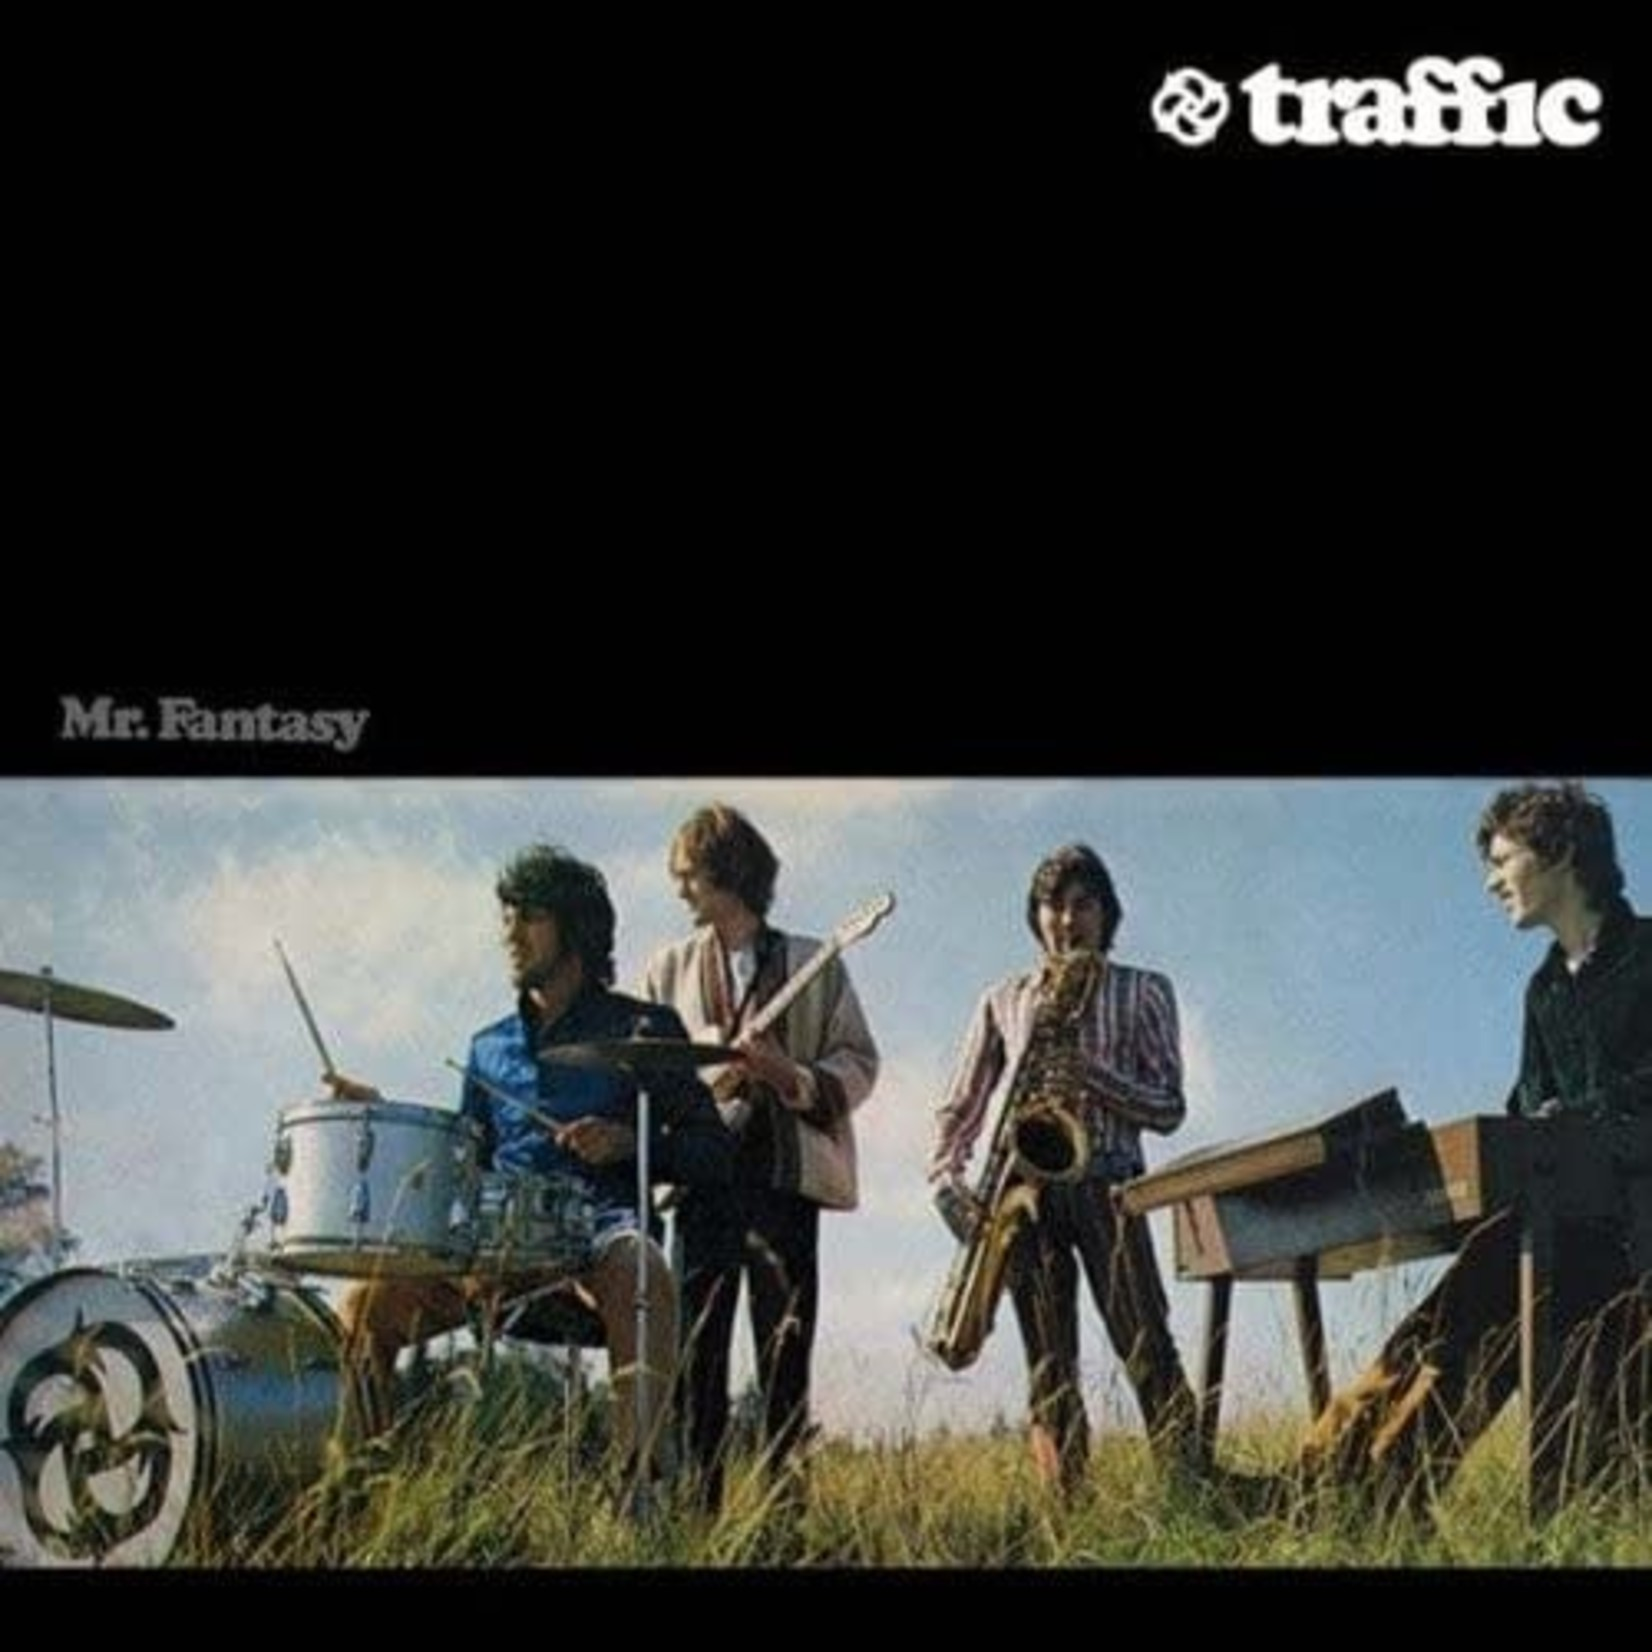 Vinyl Traffic - Mr. Fantasy